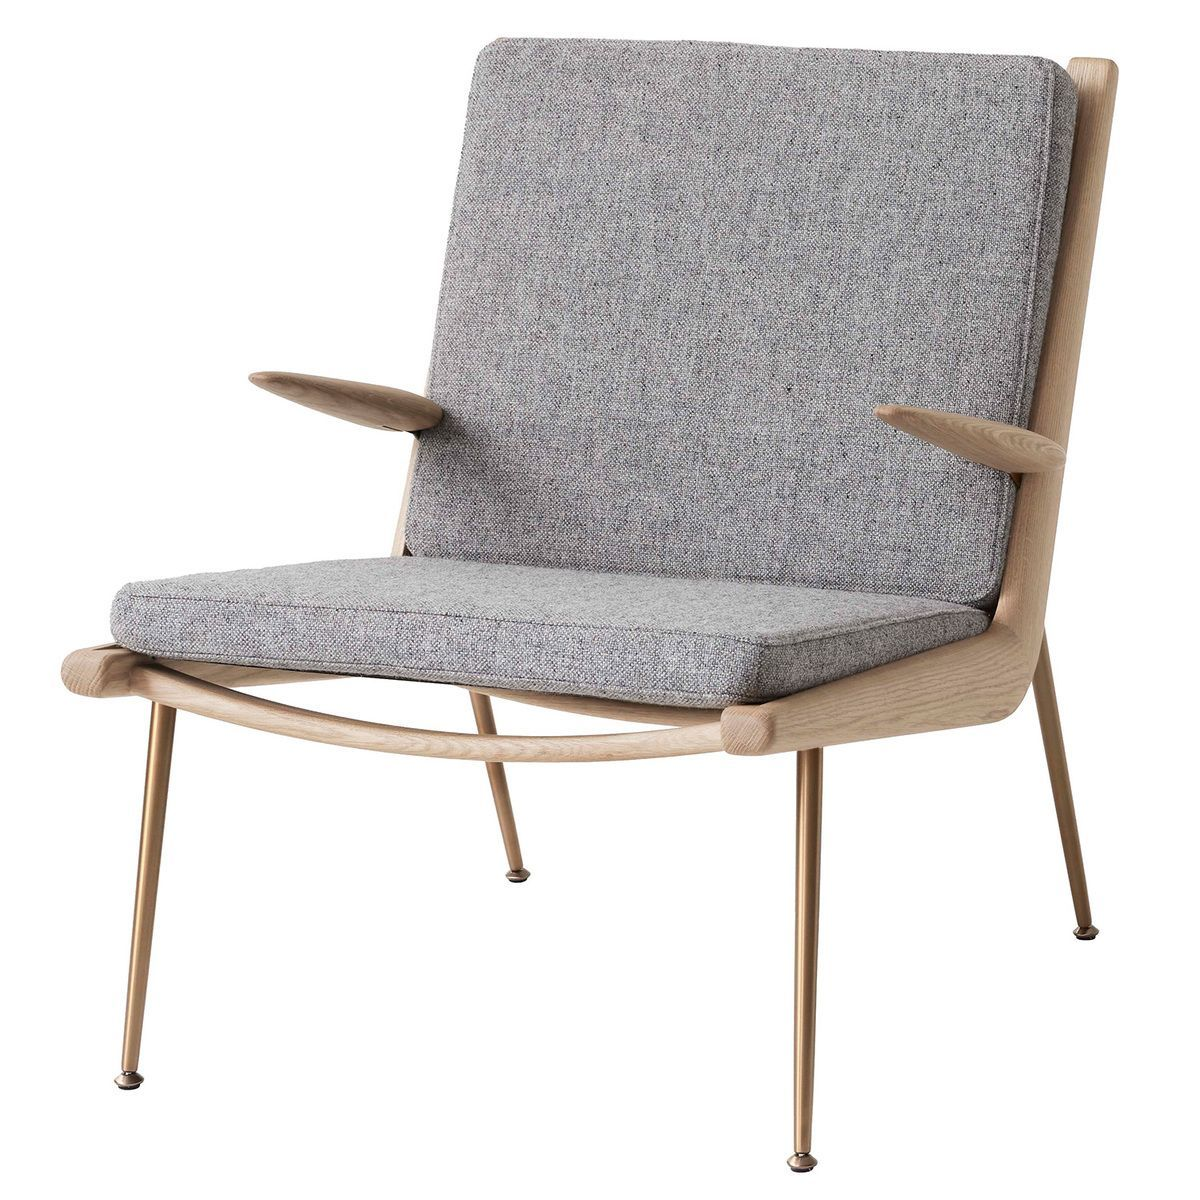 &Tradition Boomerang HM2 lounge chair, Hallingdal 130 - white oiled oa -   - #boomerang #chair #FurnitureDesign #GraphicDesign #hallingdal #HM2 #LogosDesign #lounge #oiled #tradition #Typography #white